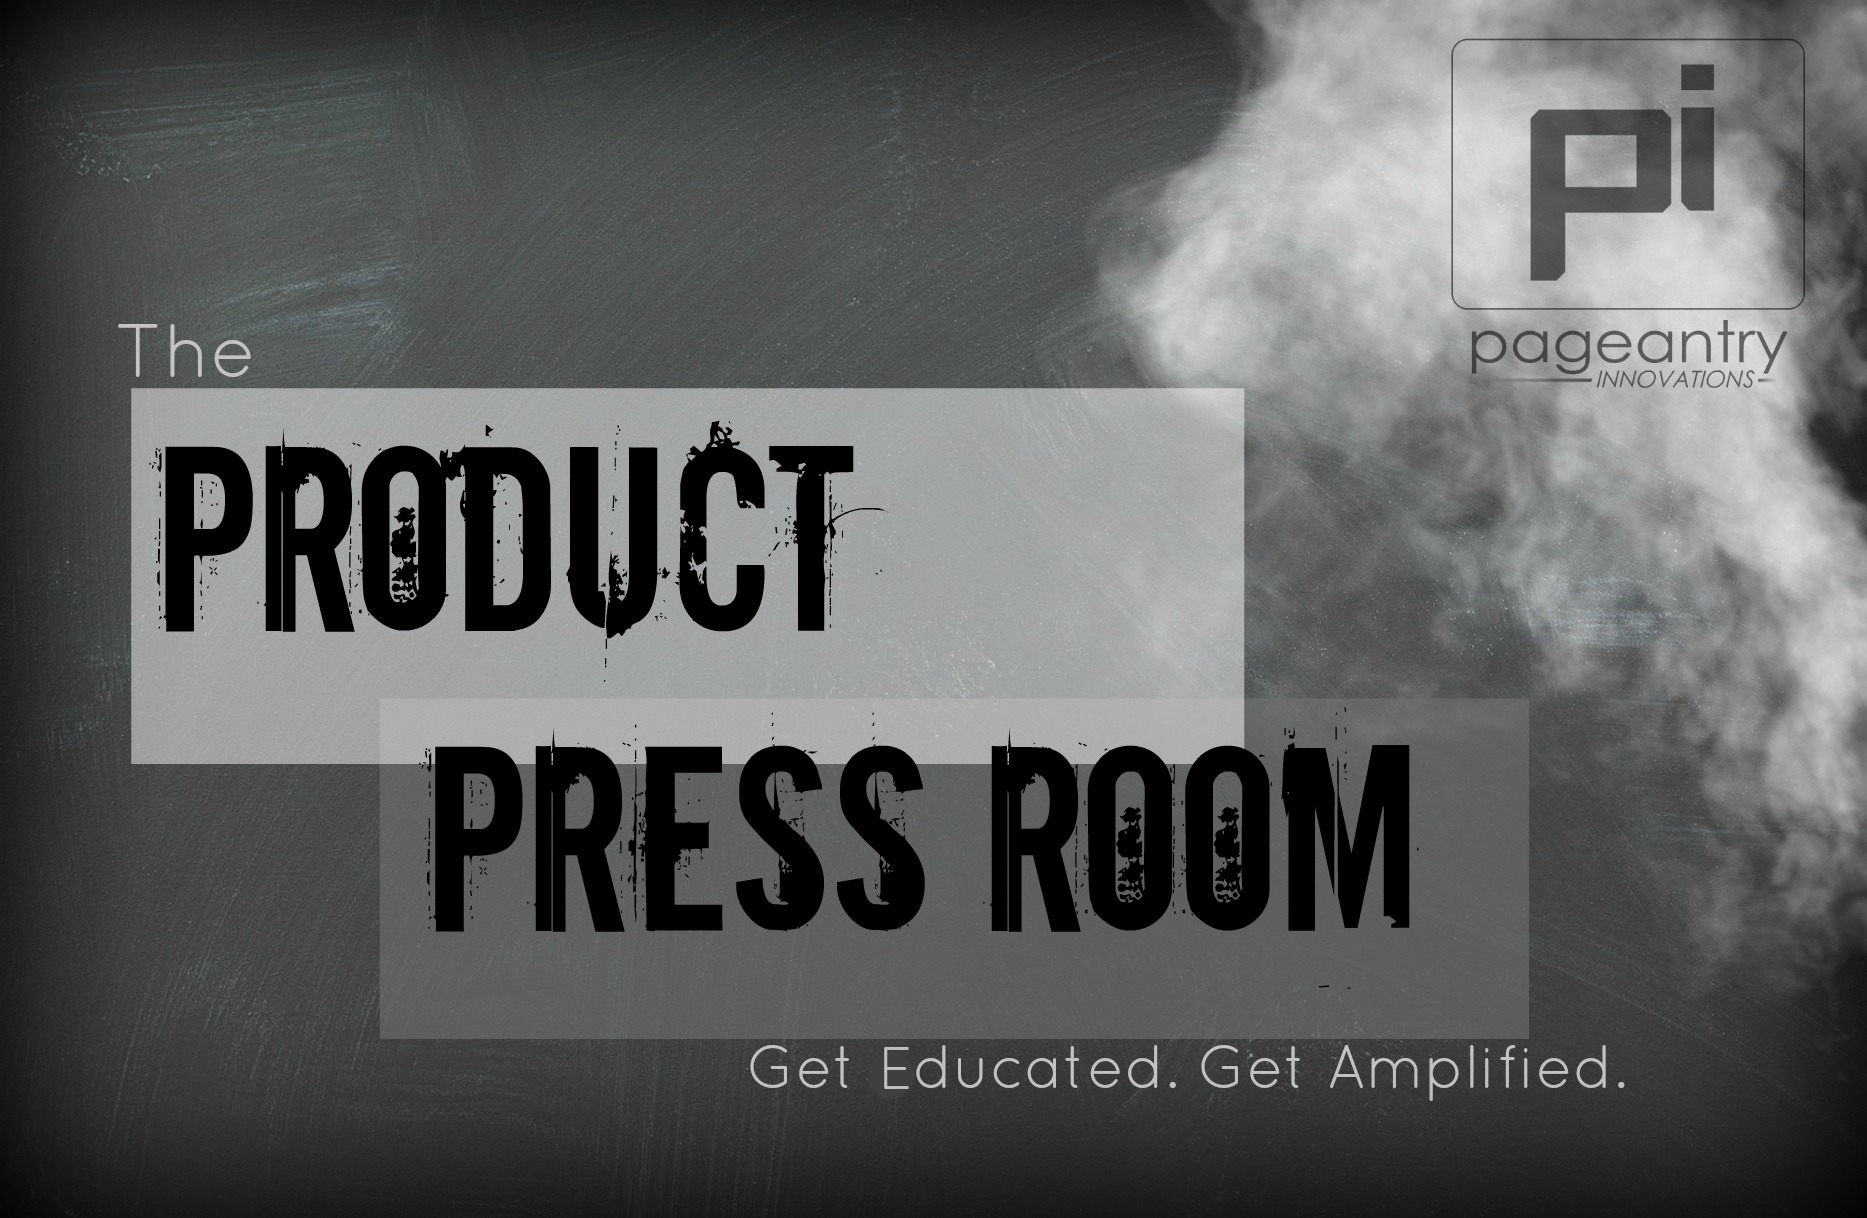 The_Product_Press_Room